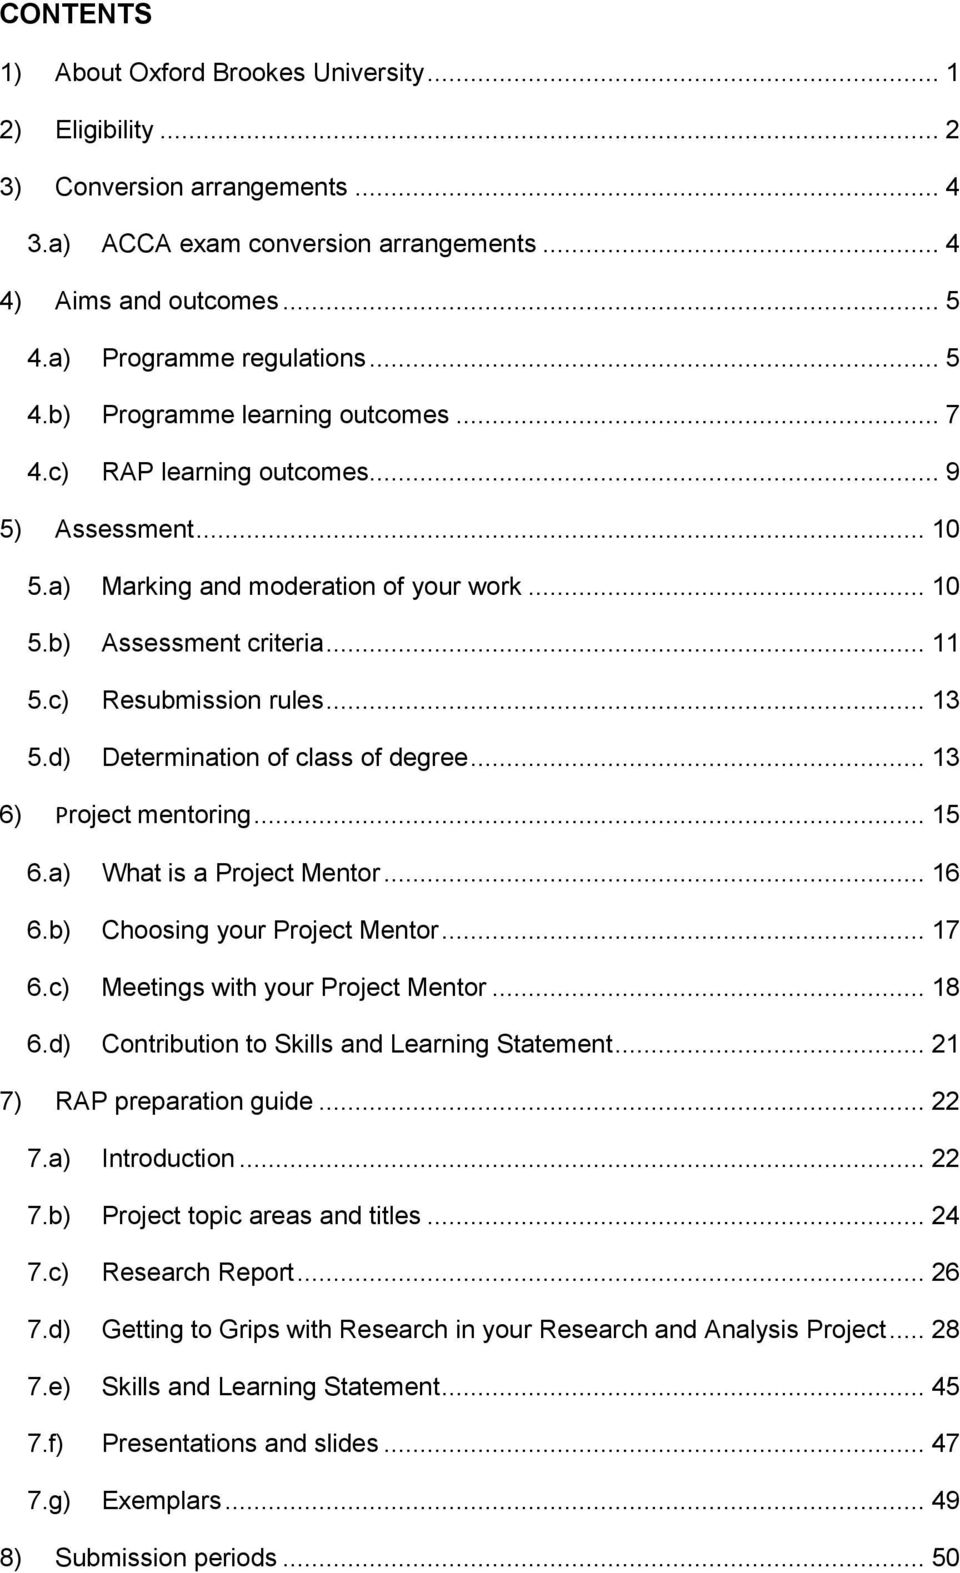 .. 13 5.d) Determination of class of degree... 13 6) Project mentoring... 15 6.a) What is a Project Mentor... 16 6.b) Choosing your Project Mentor... 17 6.c) Meetings with your Project Mentor... 18 6.